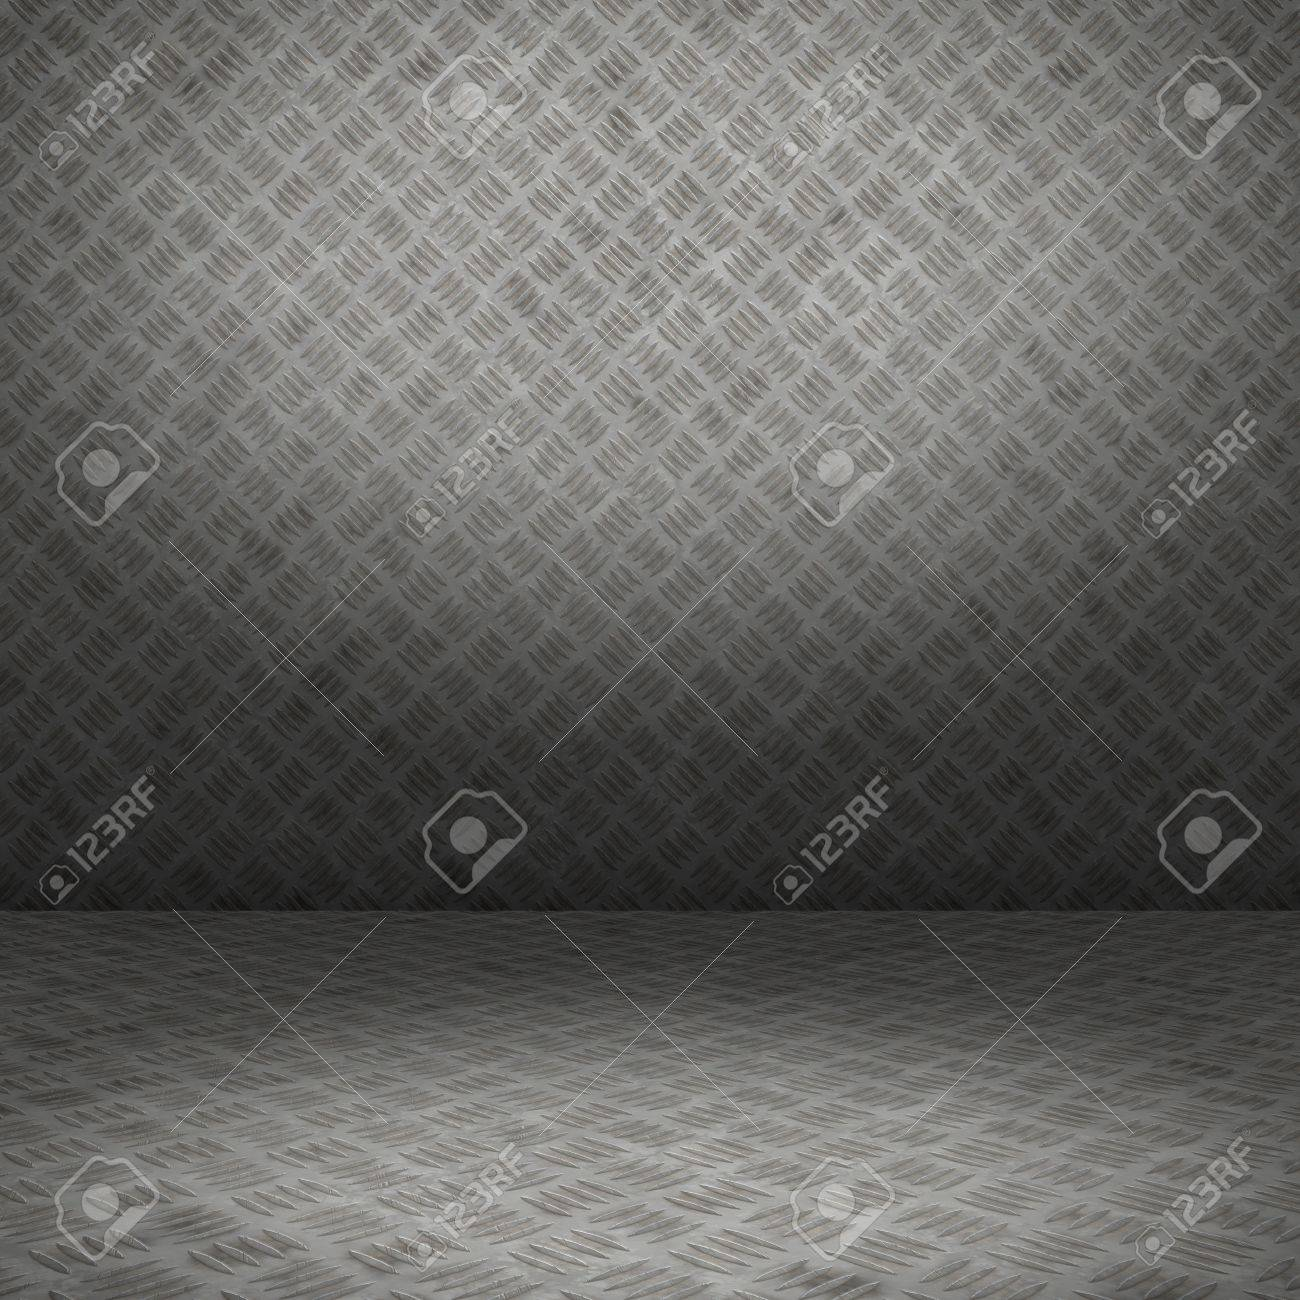 Grunge interior with metal floor and wall userful as background Stock Photo - 18518892